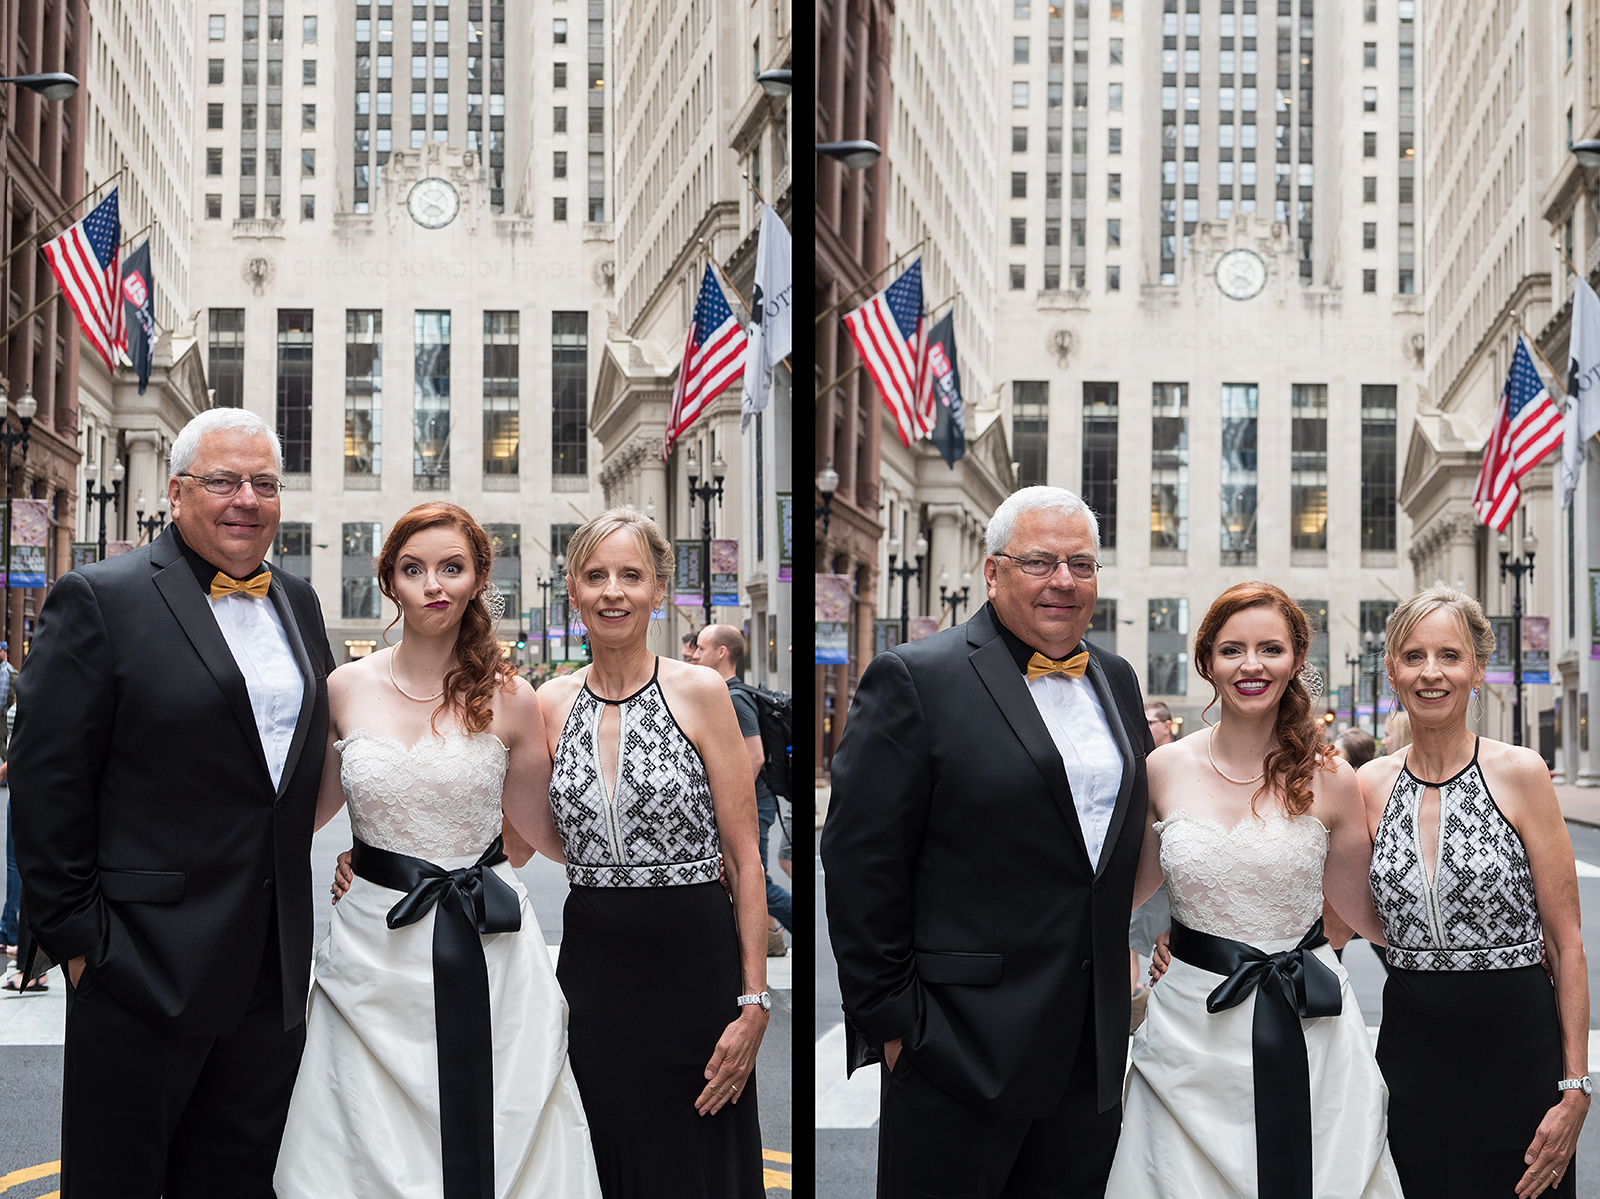 Bride with Family at Board of Trade on LaSalle Street Chicago